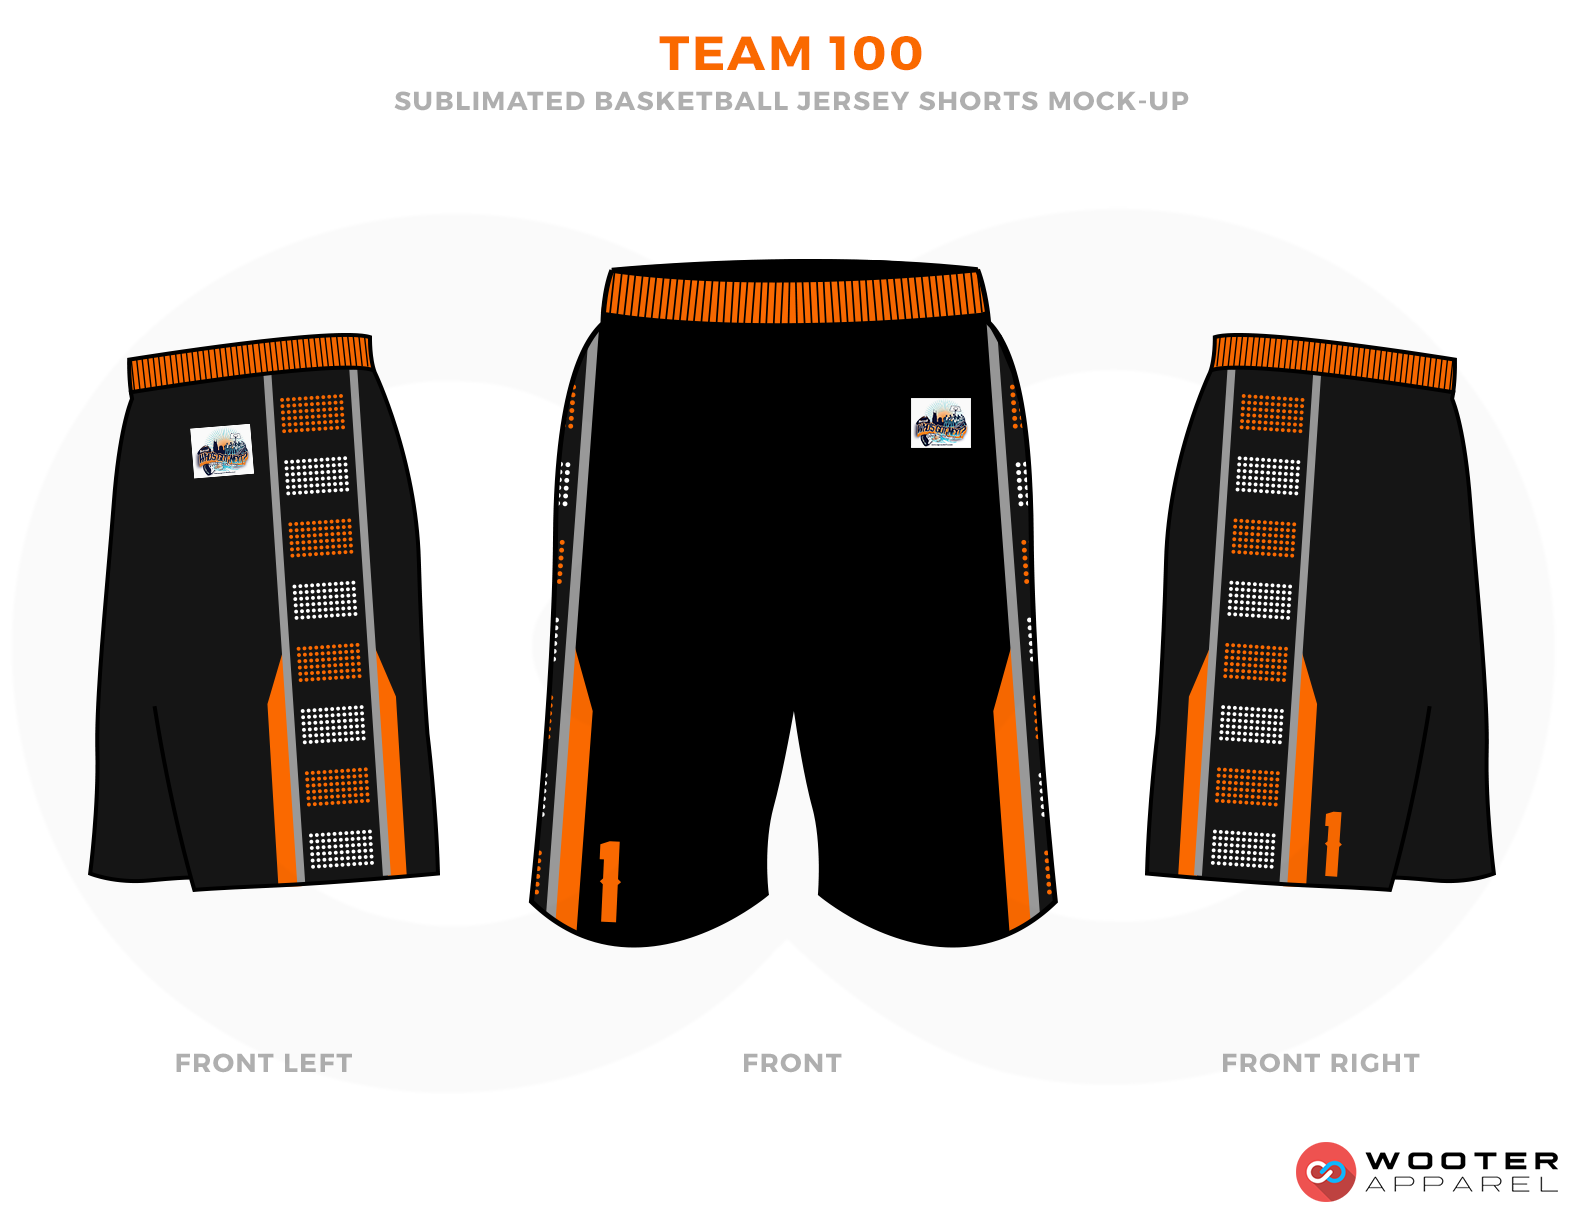 TEAM 100 Black Orange Brown and White Basketball Uniforms, Jersey and Shorts